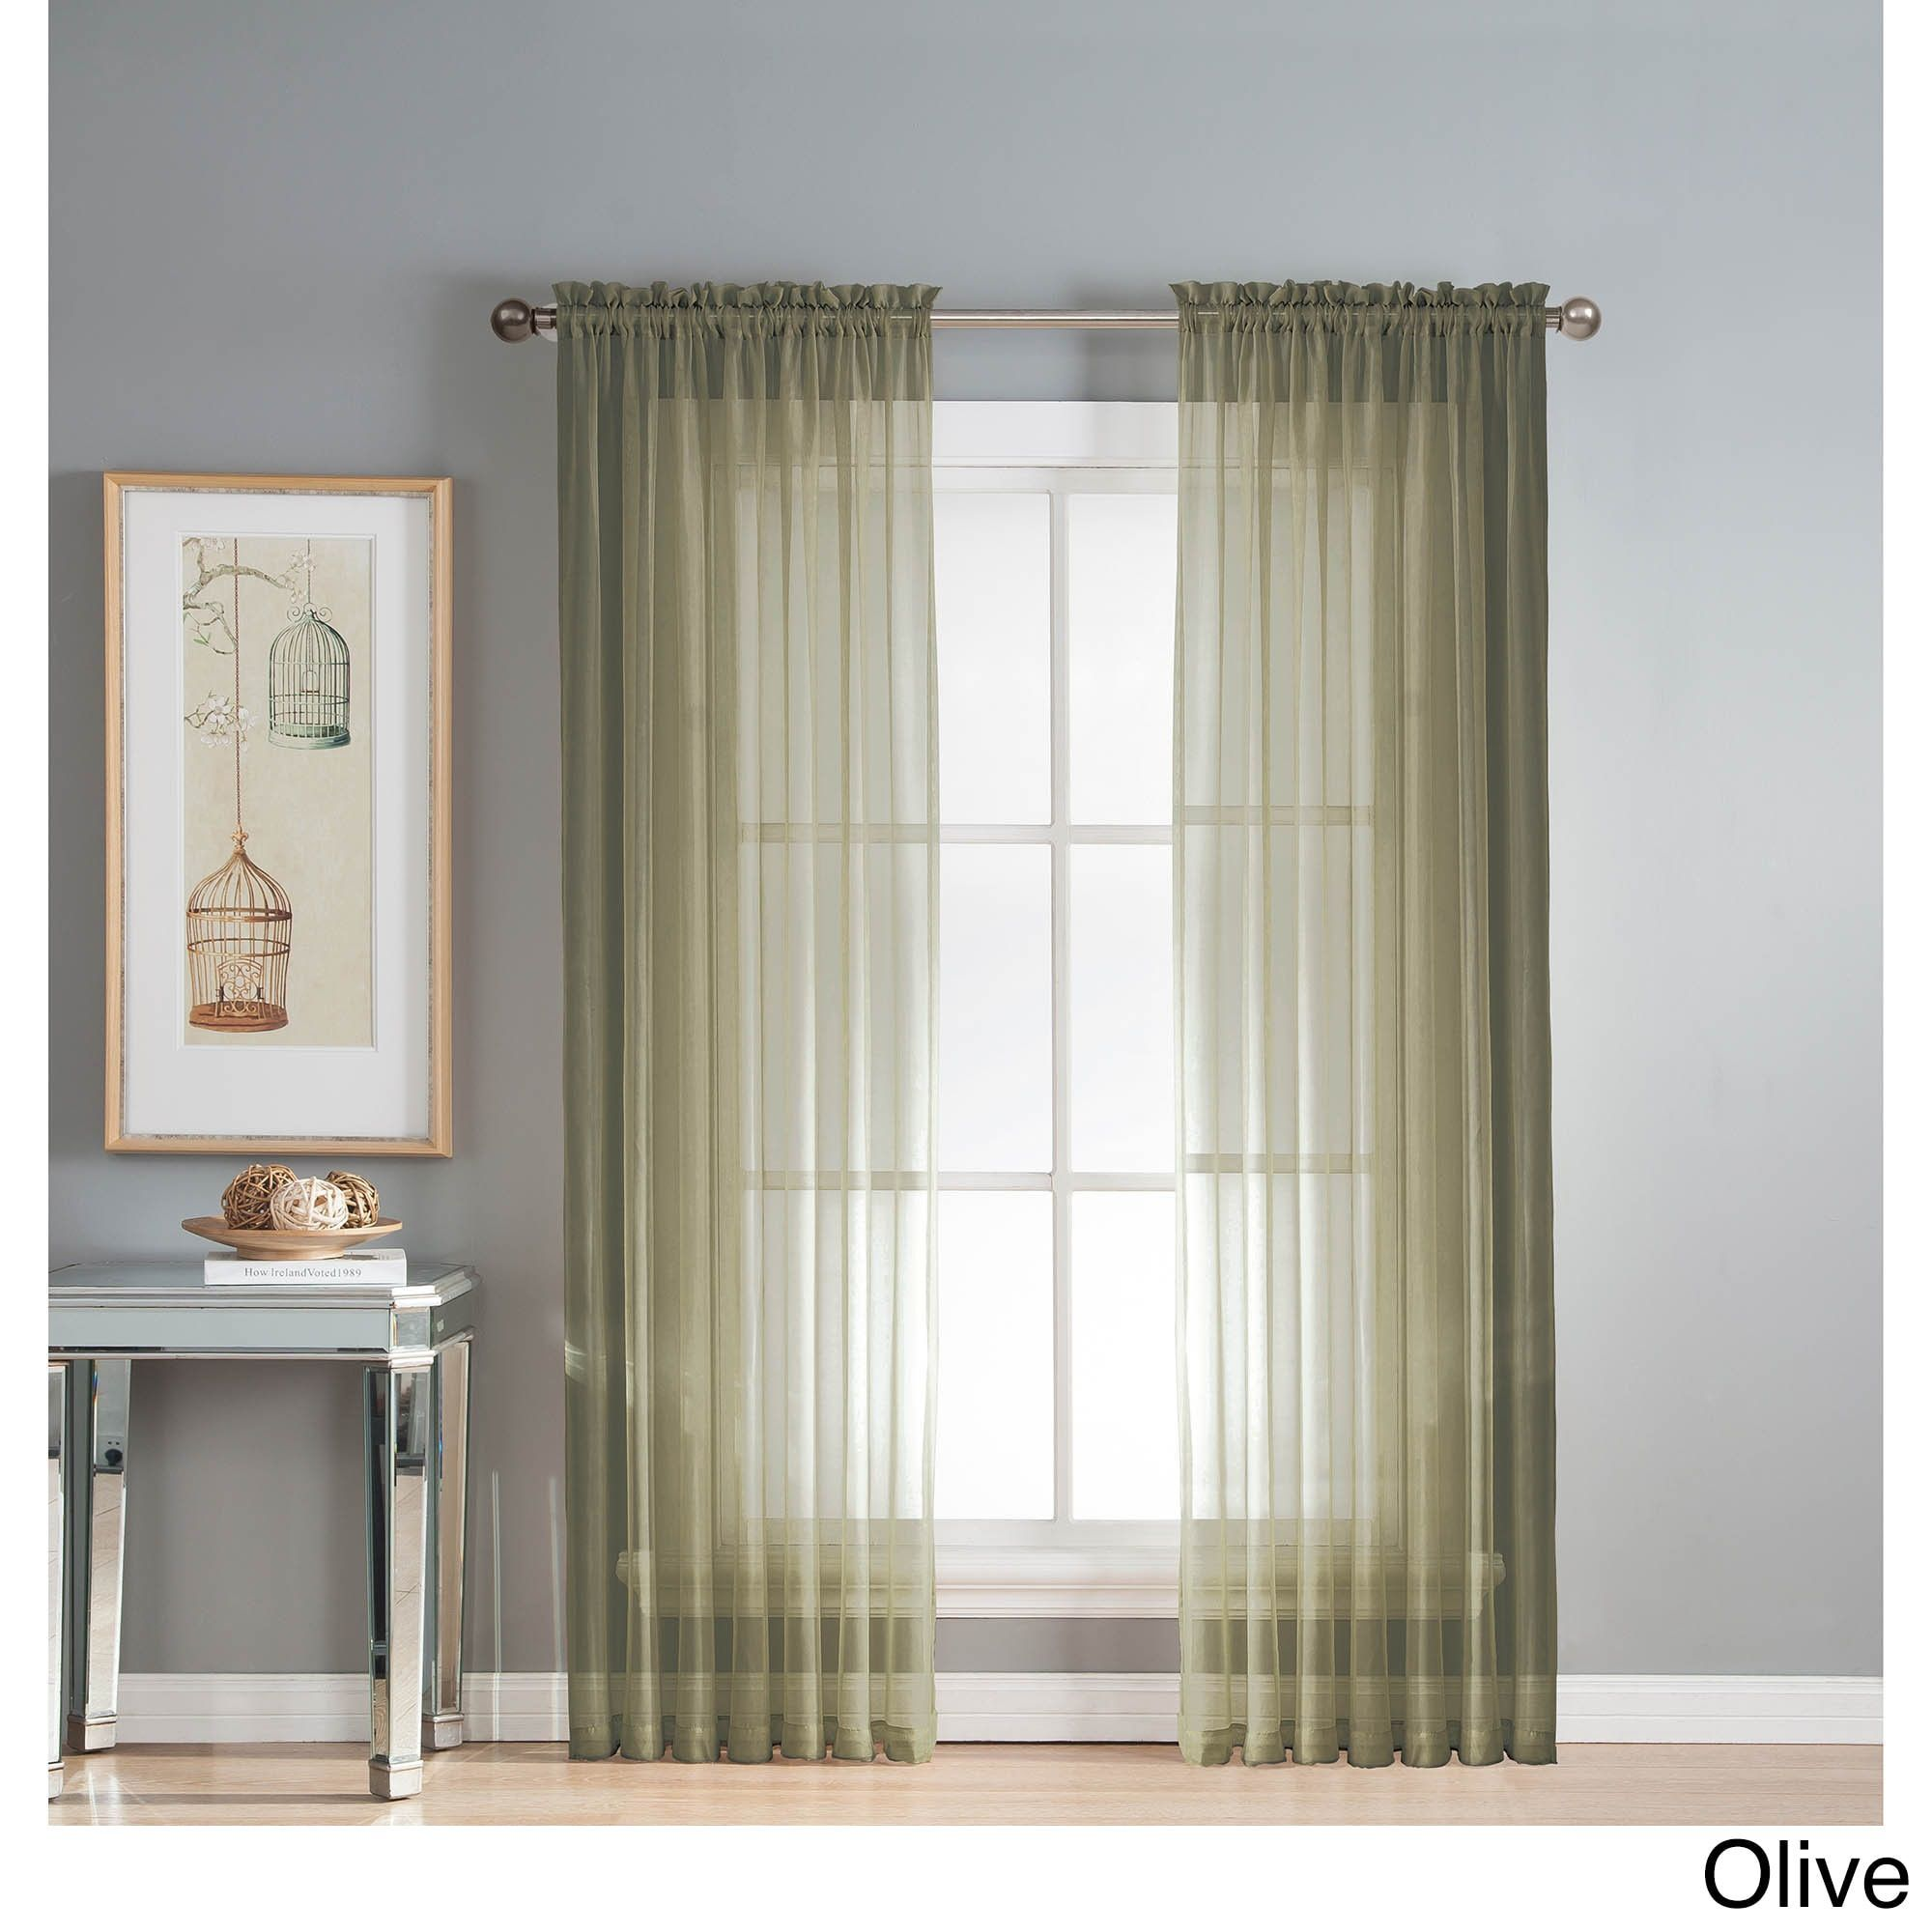 Window Elements Diamond Sheer Voile Extra Wide 90 Inch Rod Pocket Curtain Panel